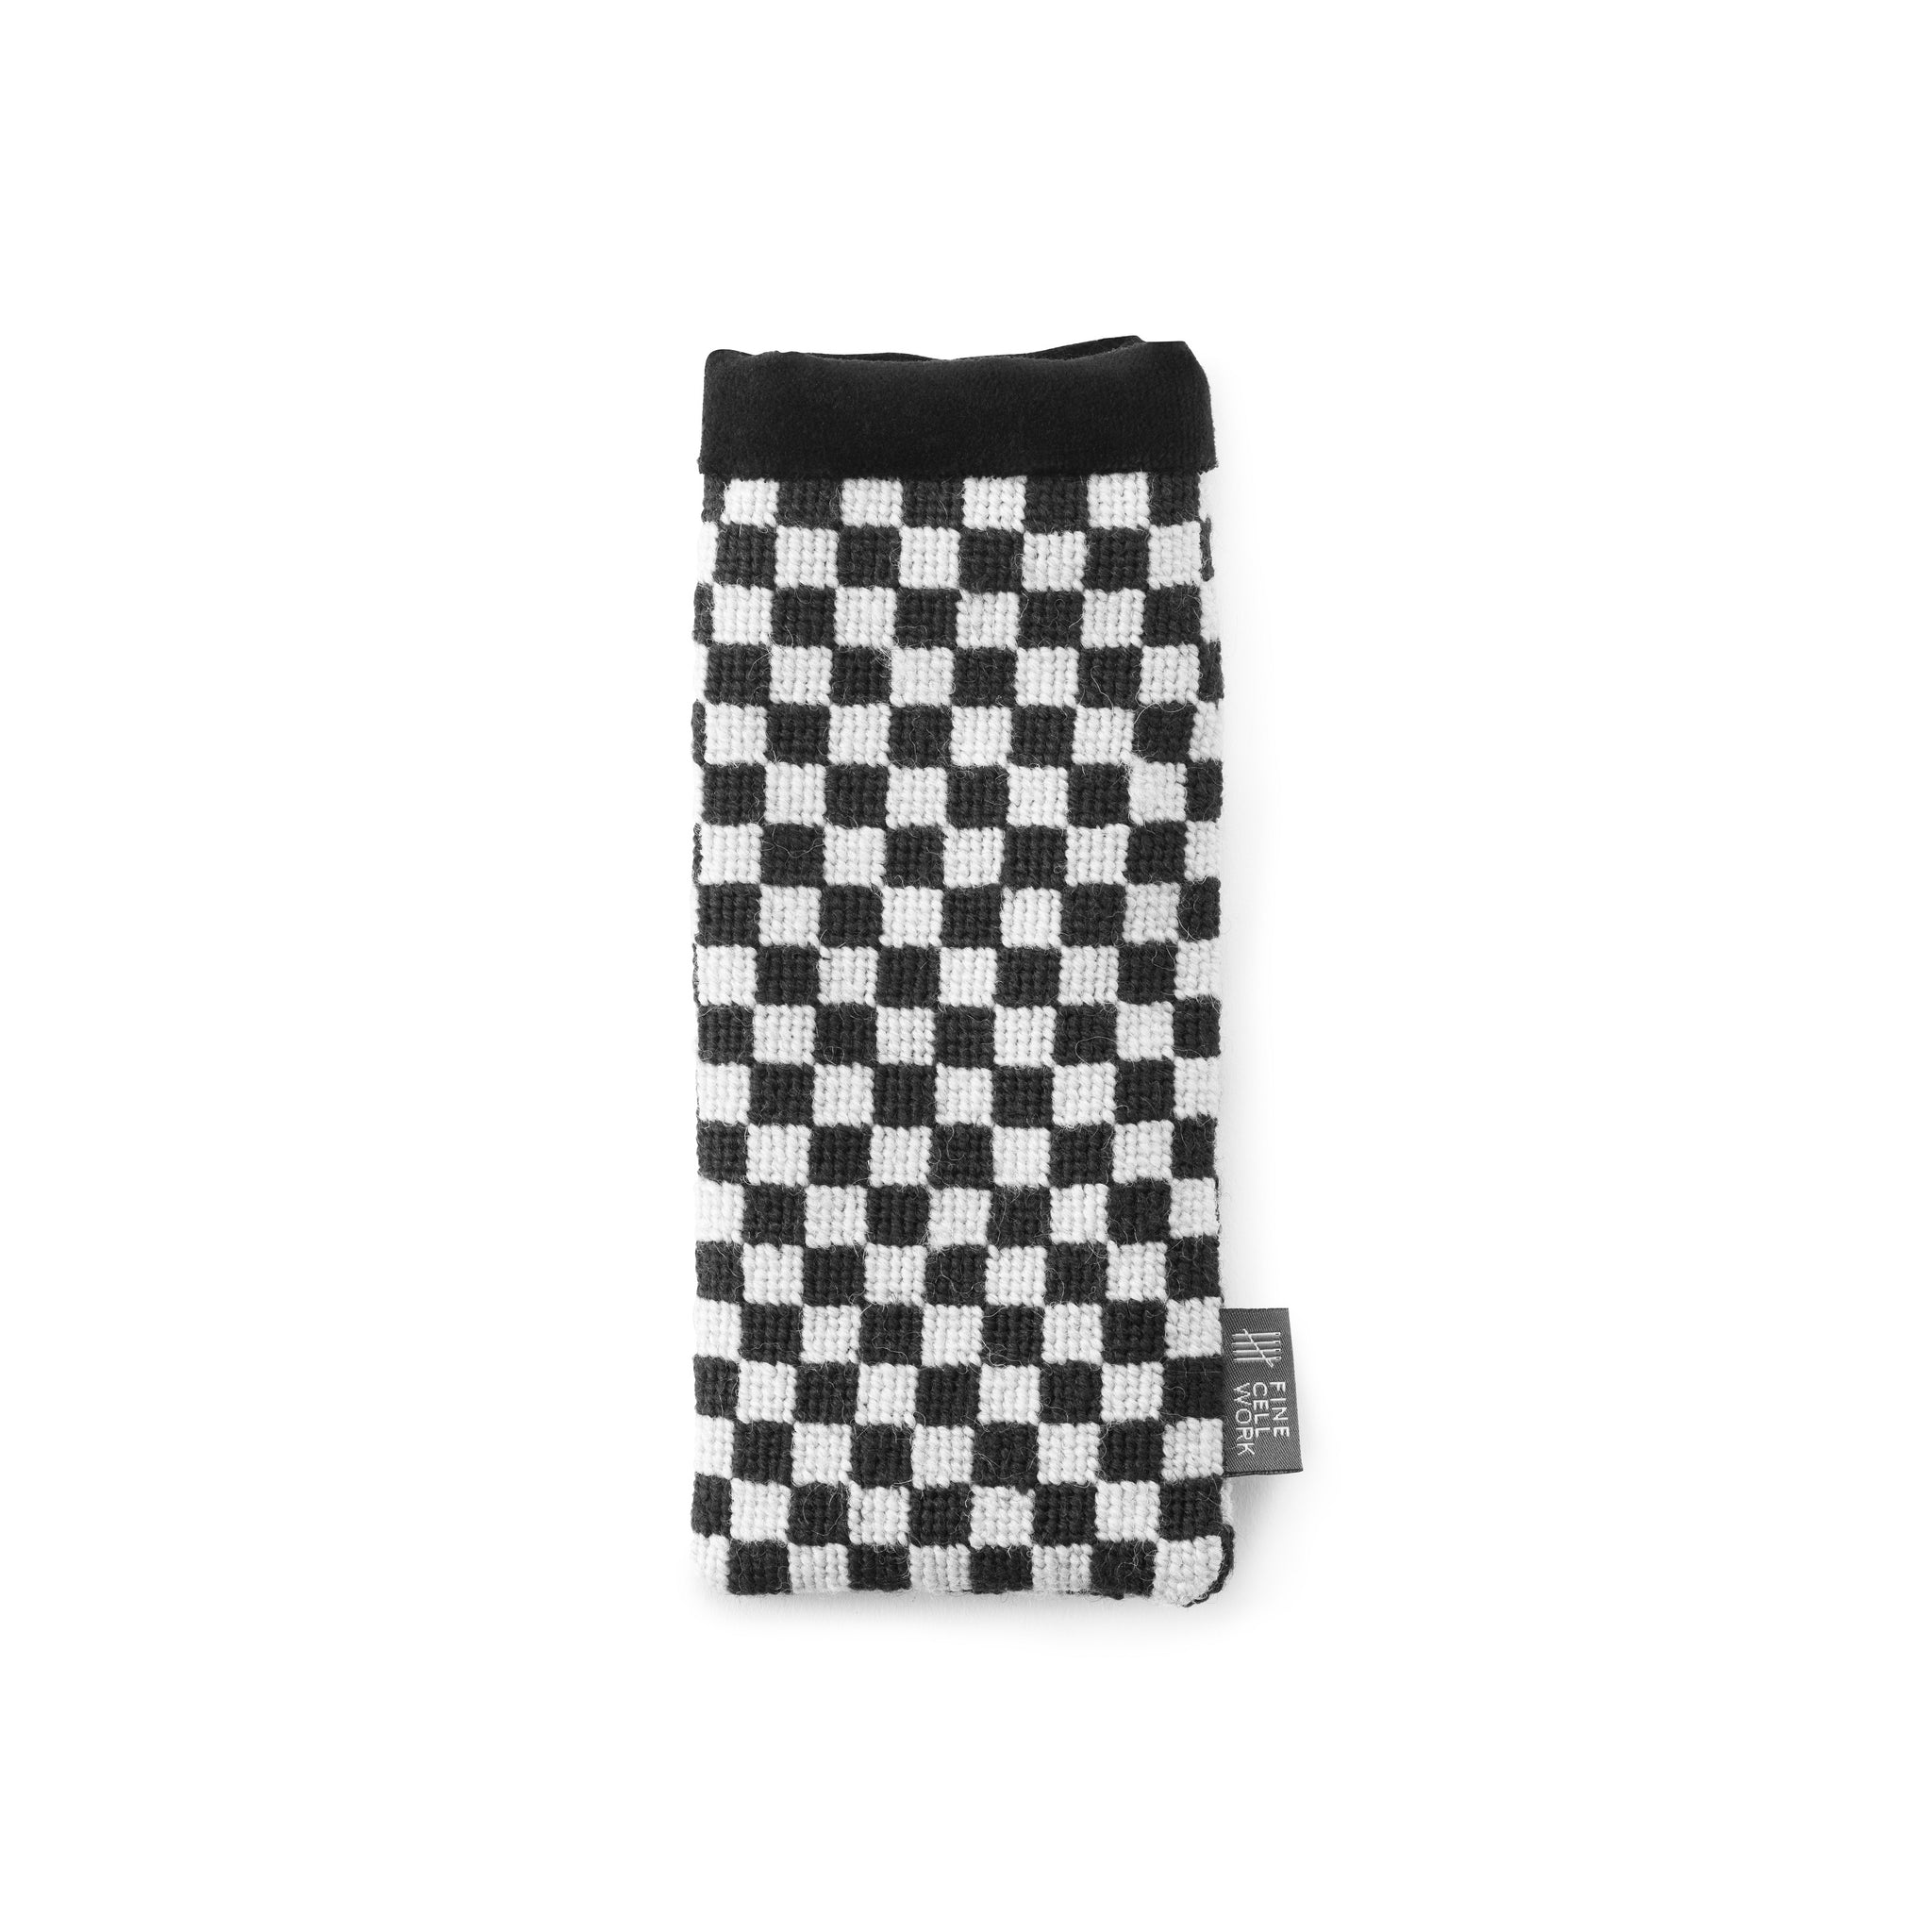 Silverstone Black and White Needlepoint Chequerboard Glasses Case Cath Kidston for Fine Cell Work